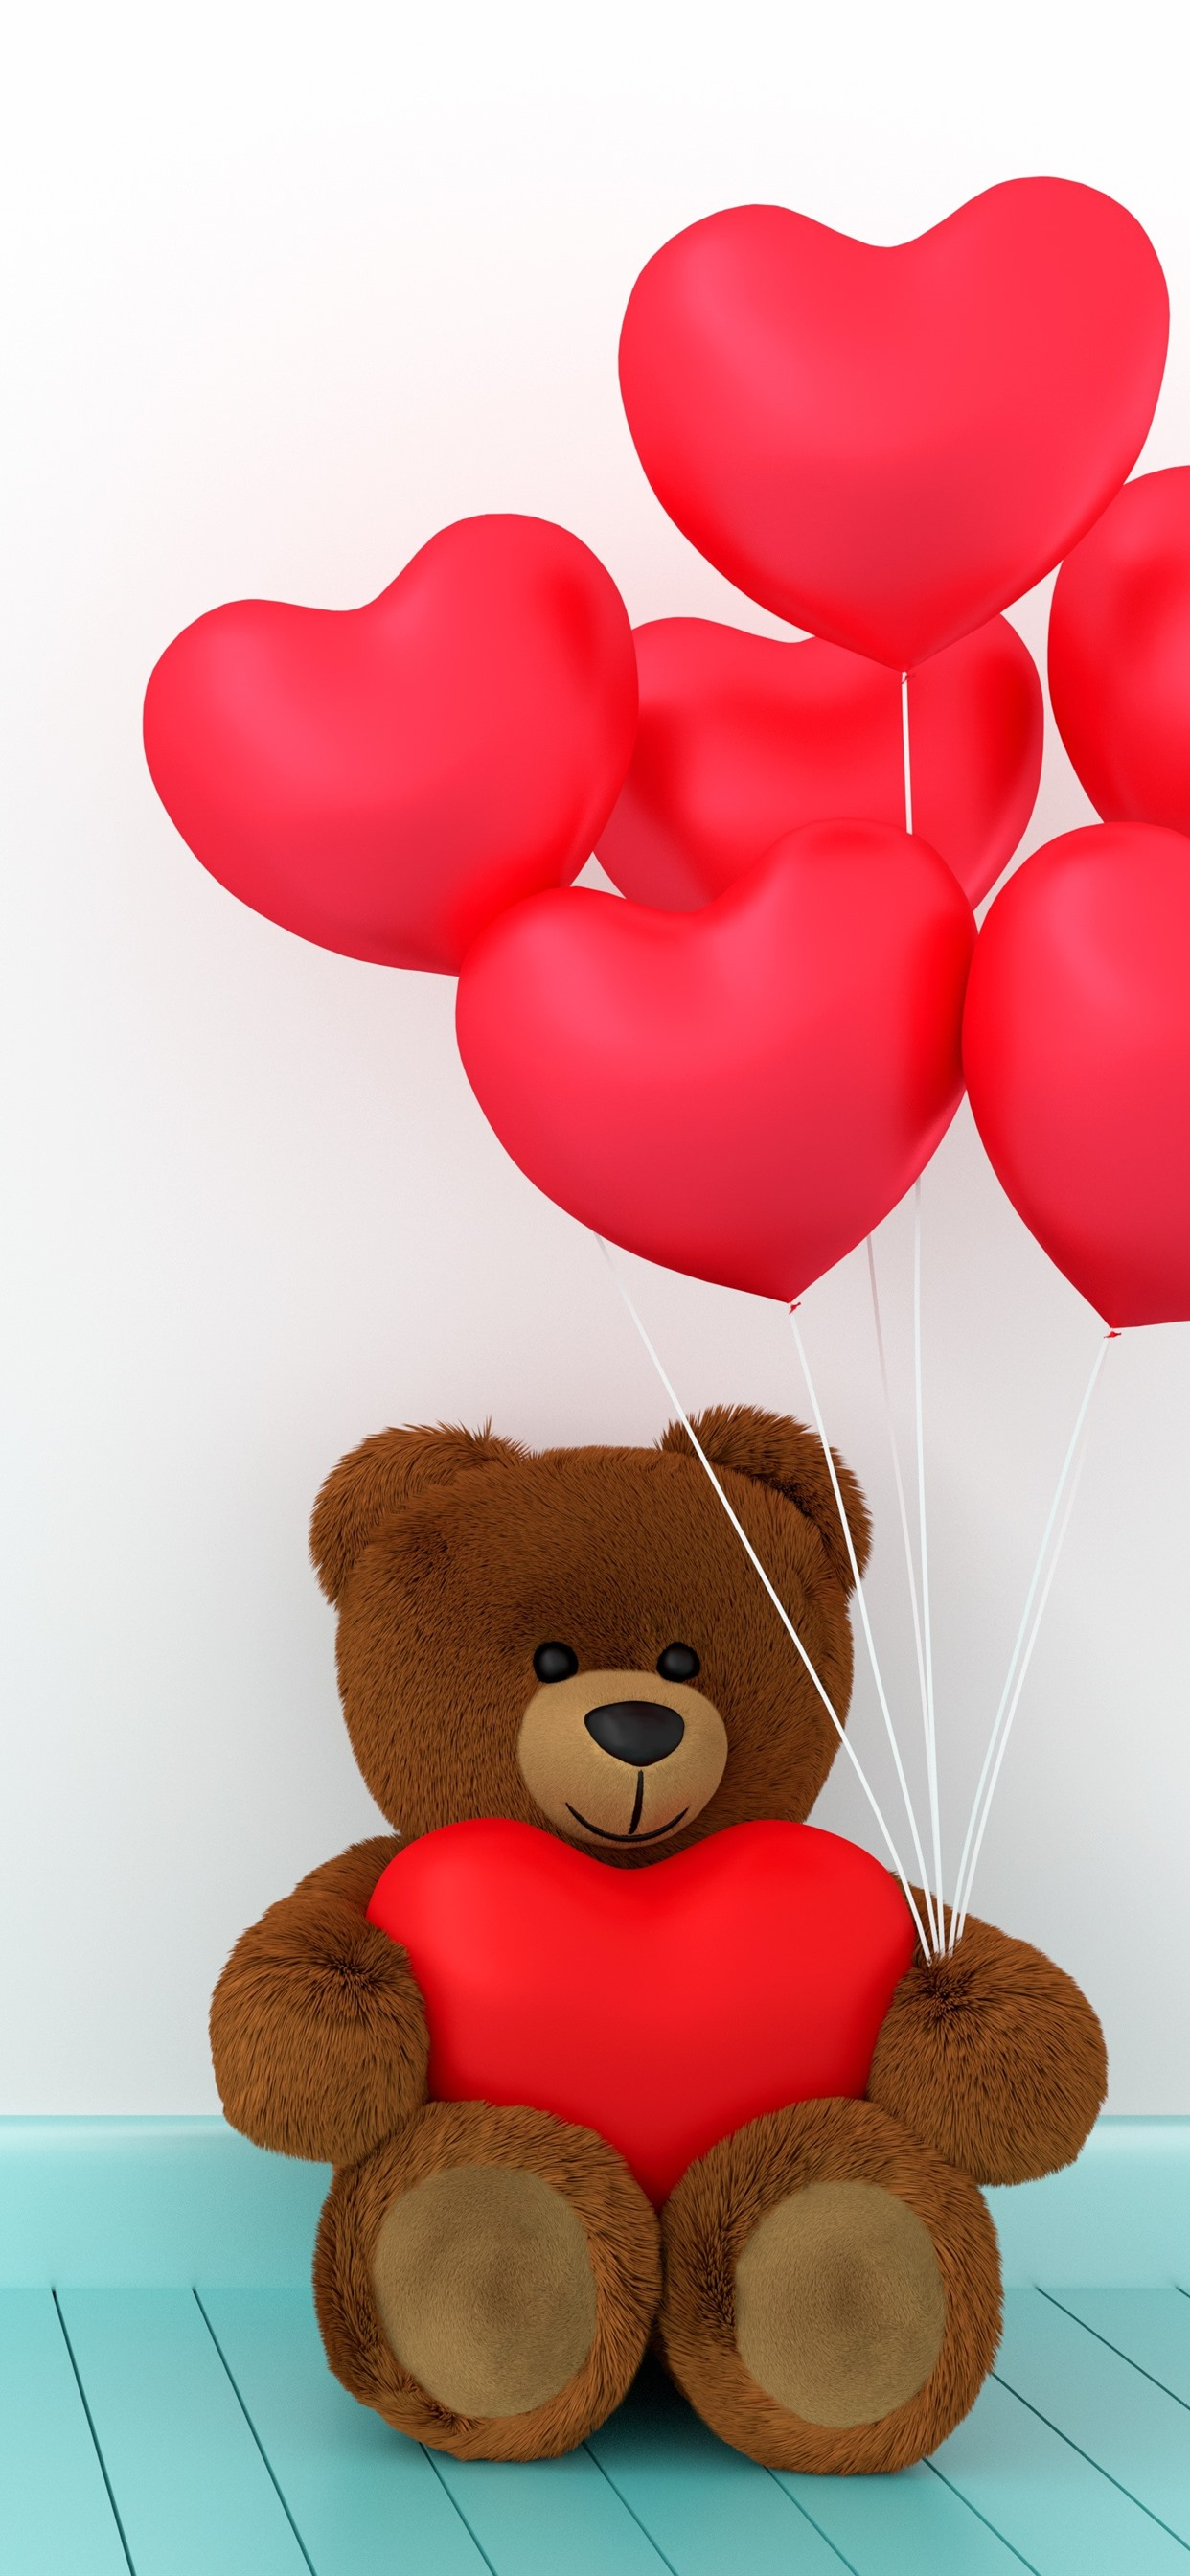 Teddy Bear Red Love Hearts Balloons Romantic 1242x2688